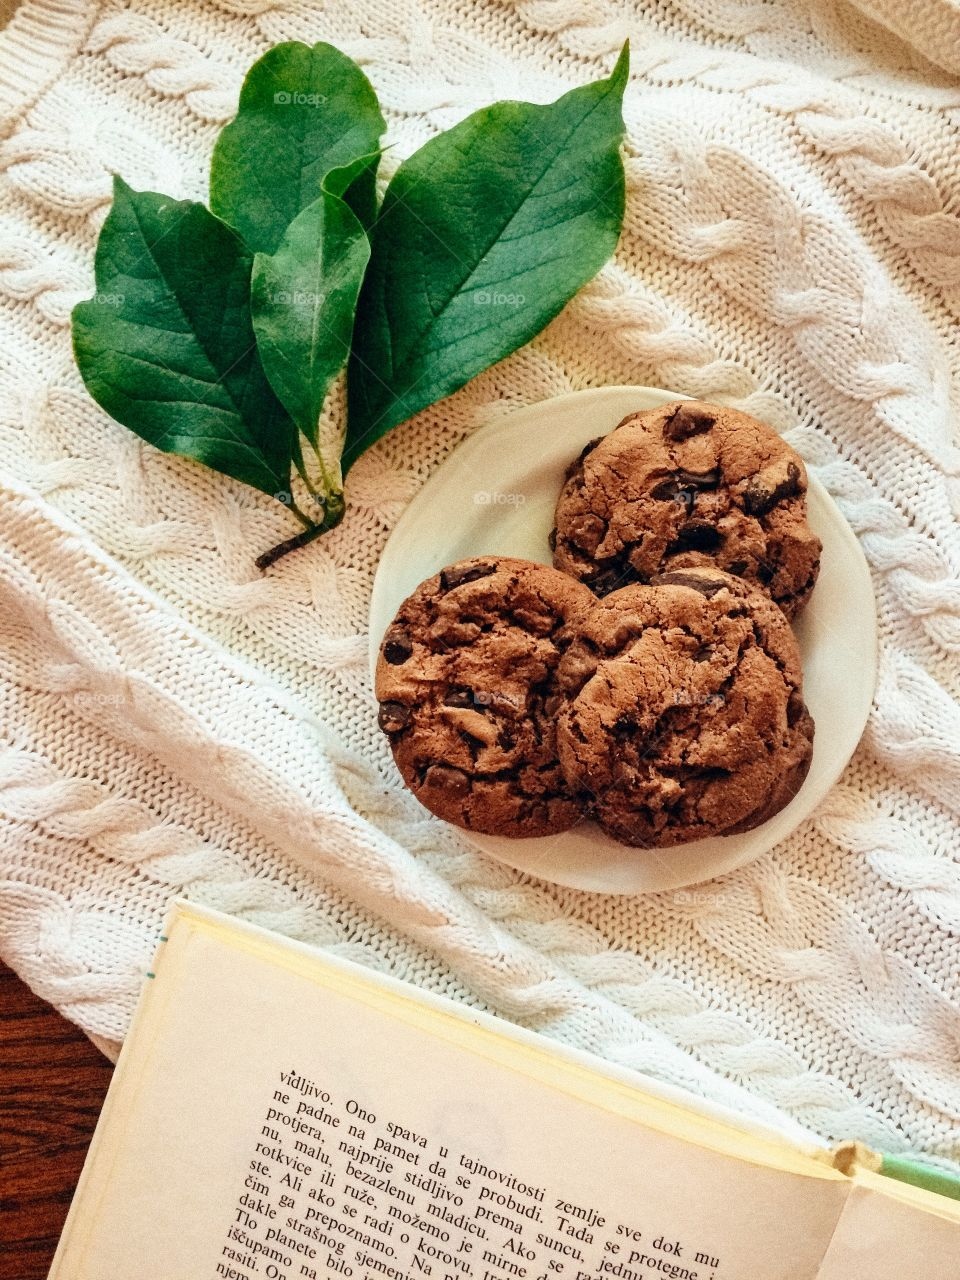 Cookies and books